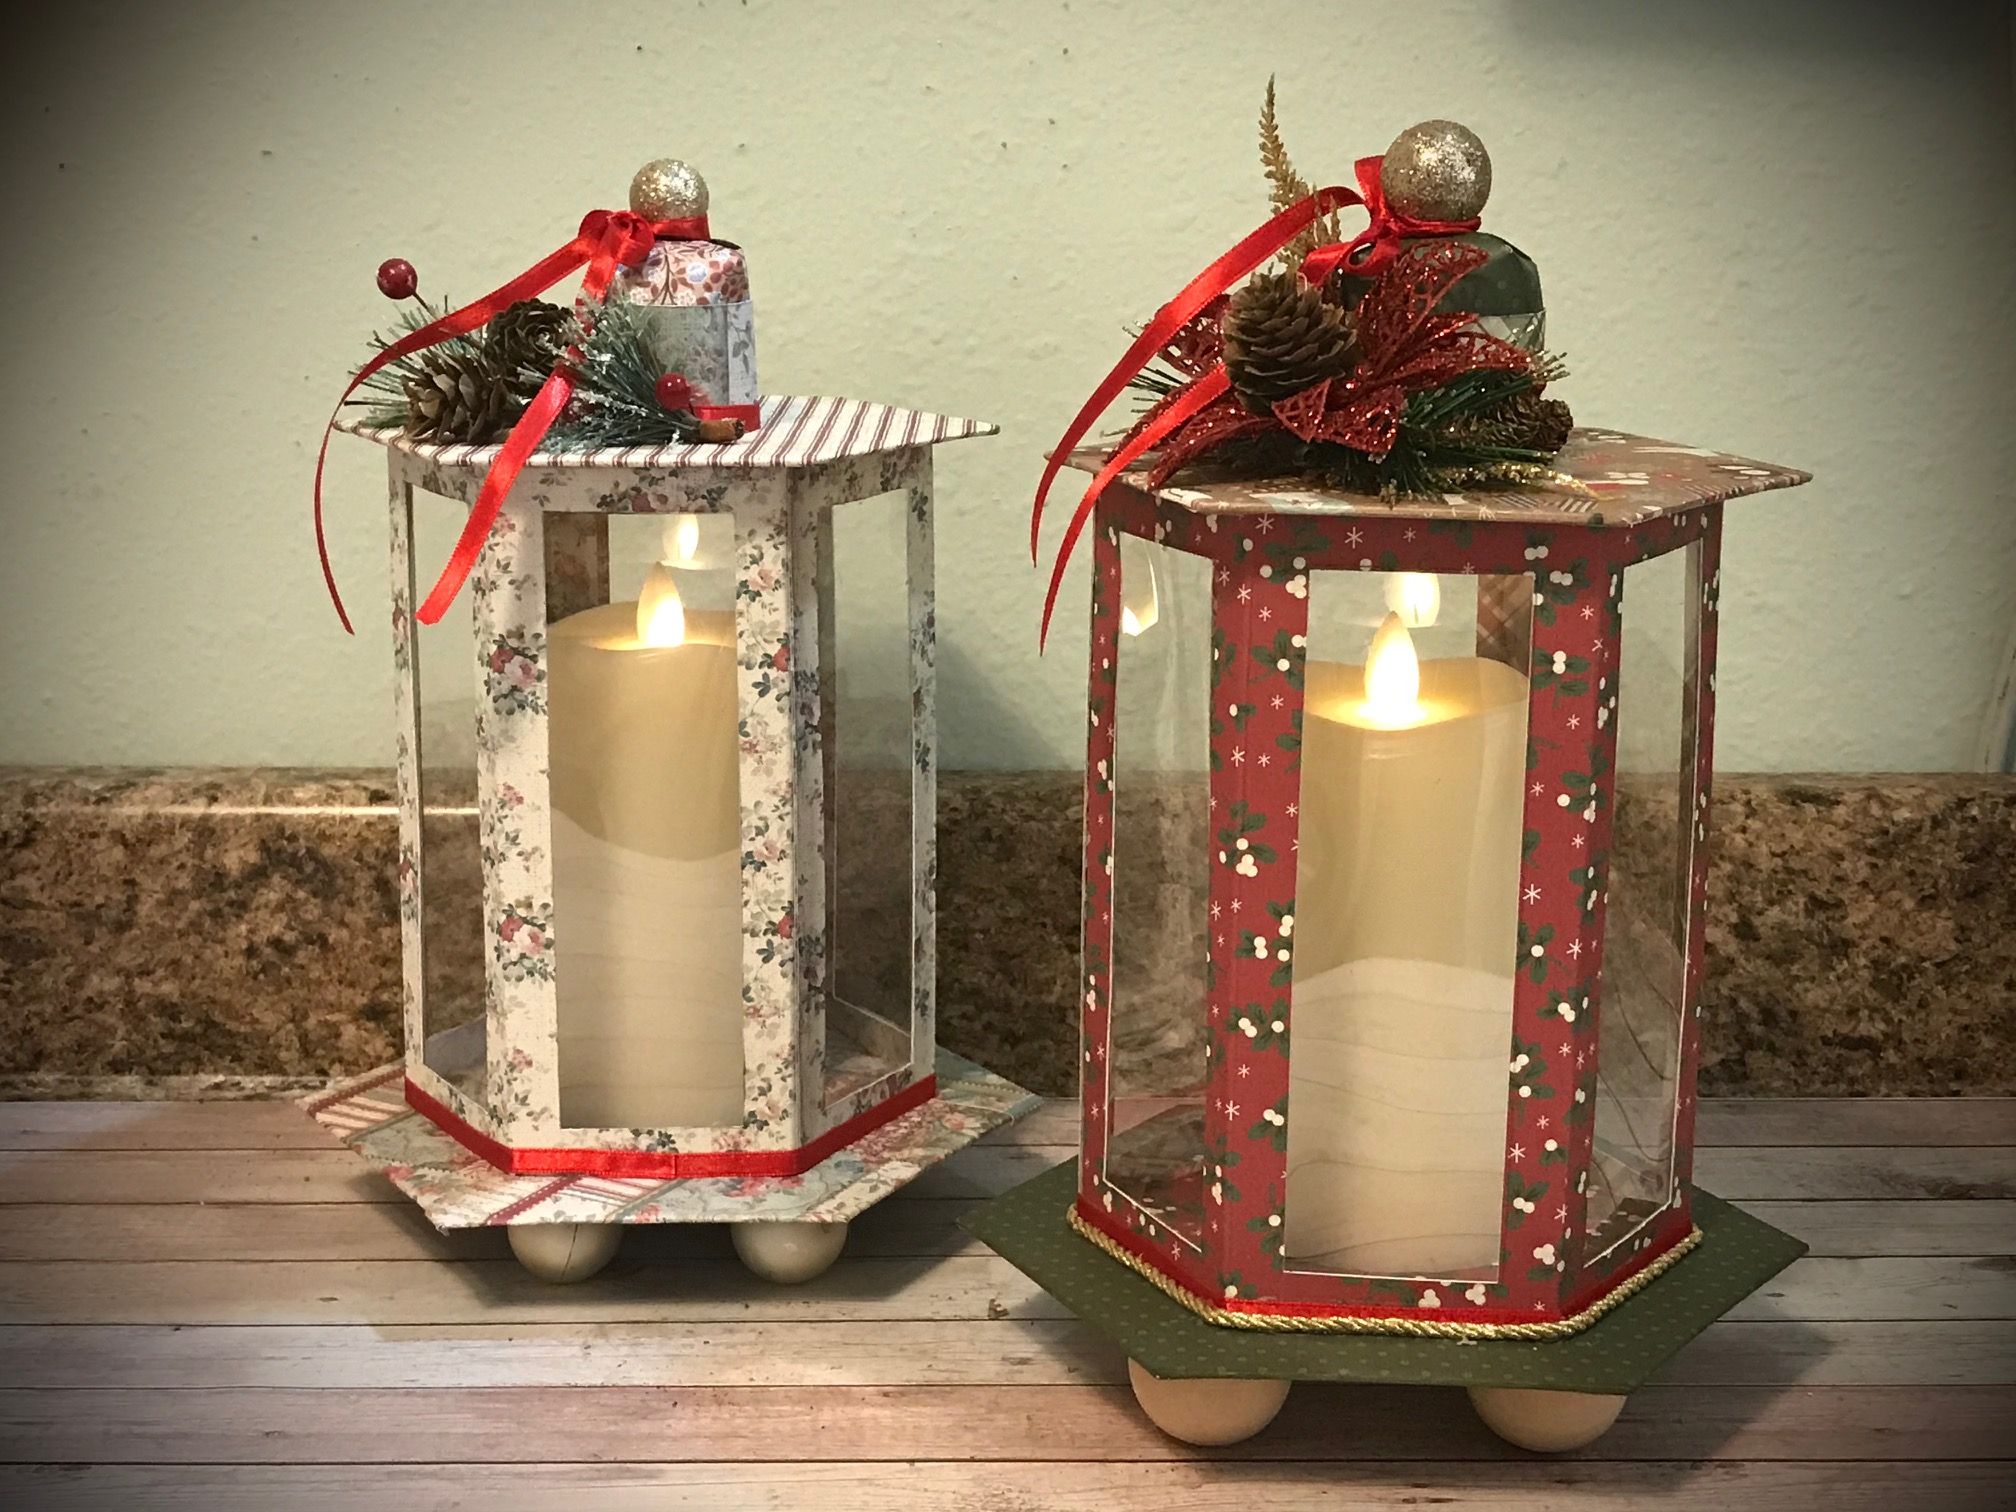 Simple Stories Merry & Bright Holiday Lantern